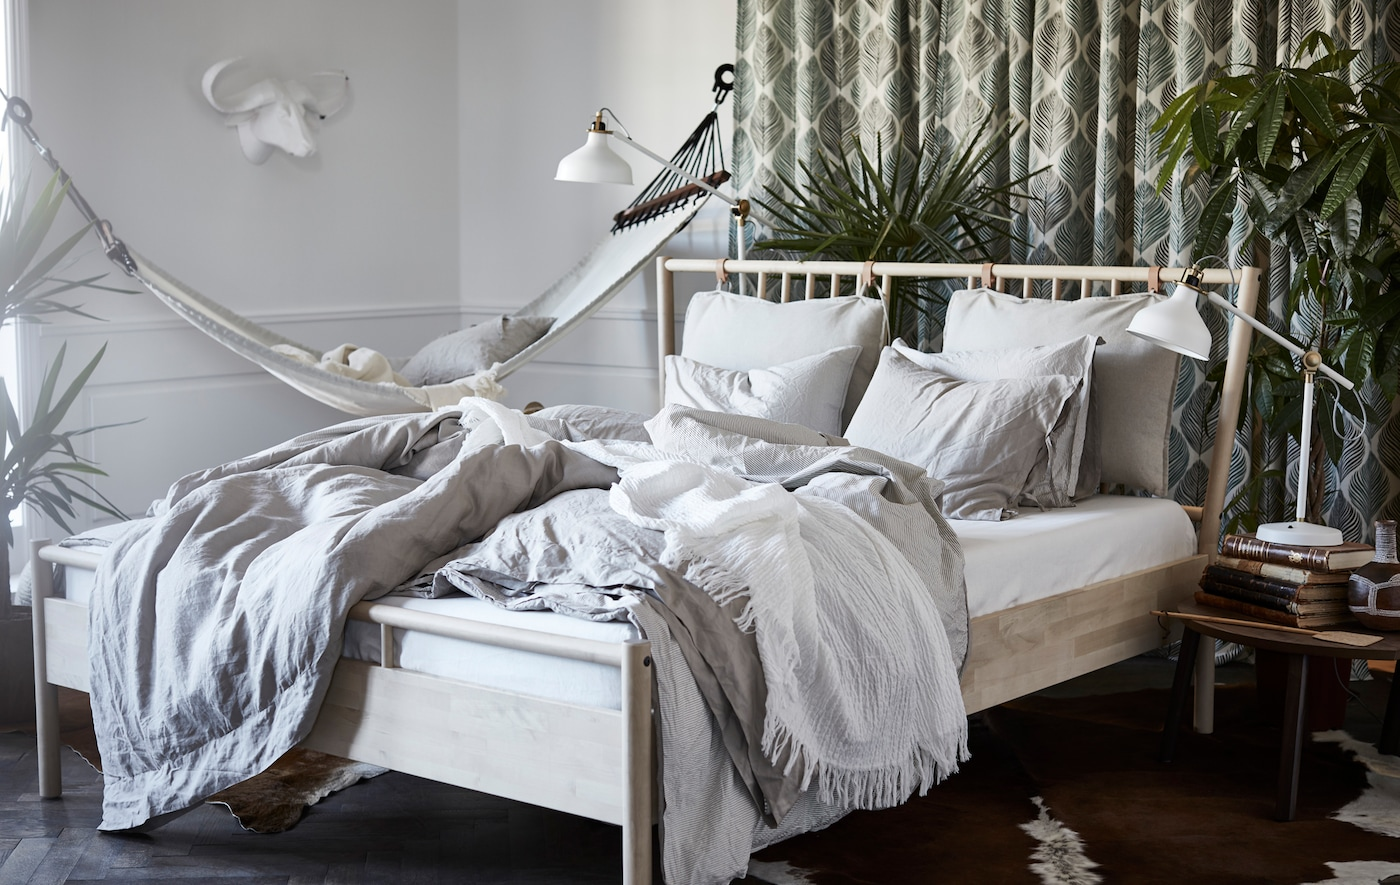 A bedroom with a BJÖRKSNÄS bed frame, RANARP lamp and STOCKHOLM coffee table.